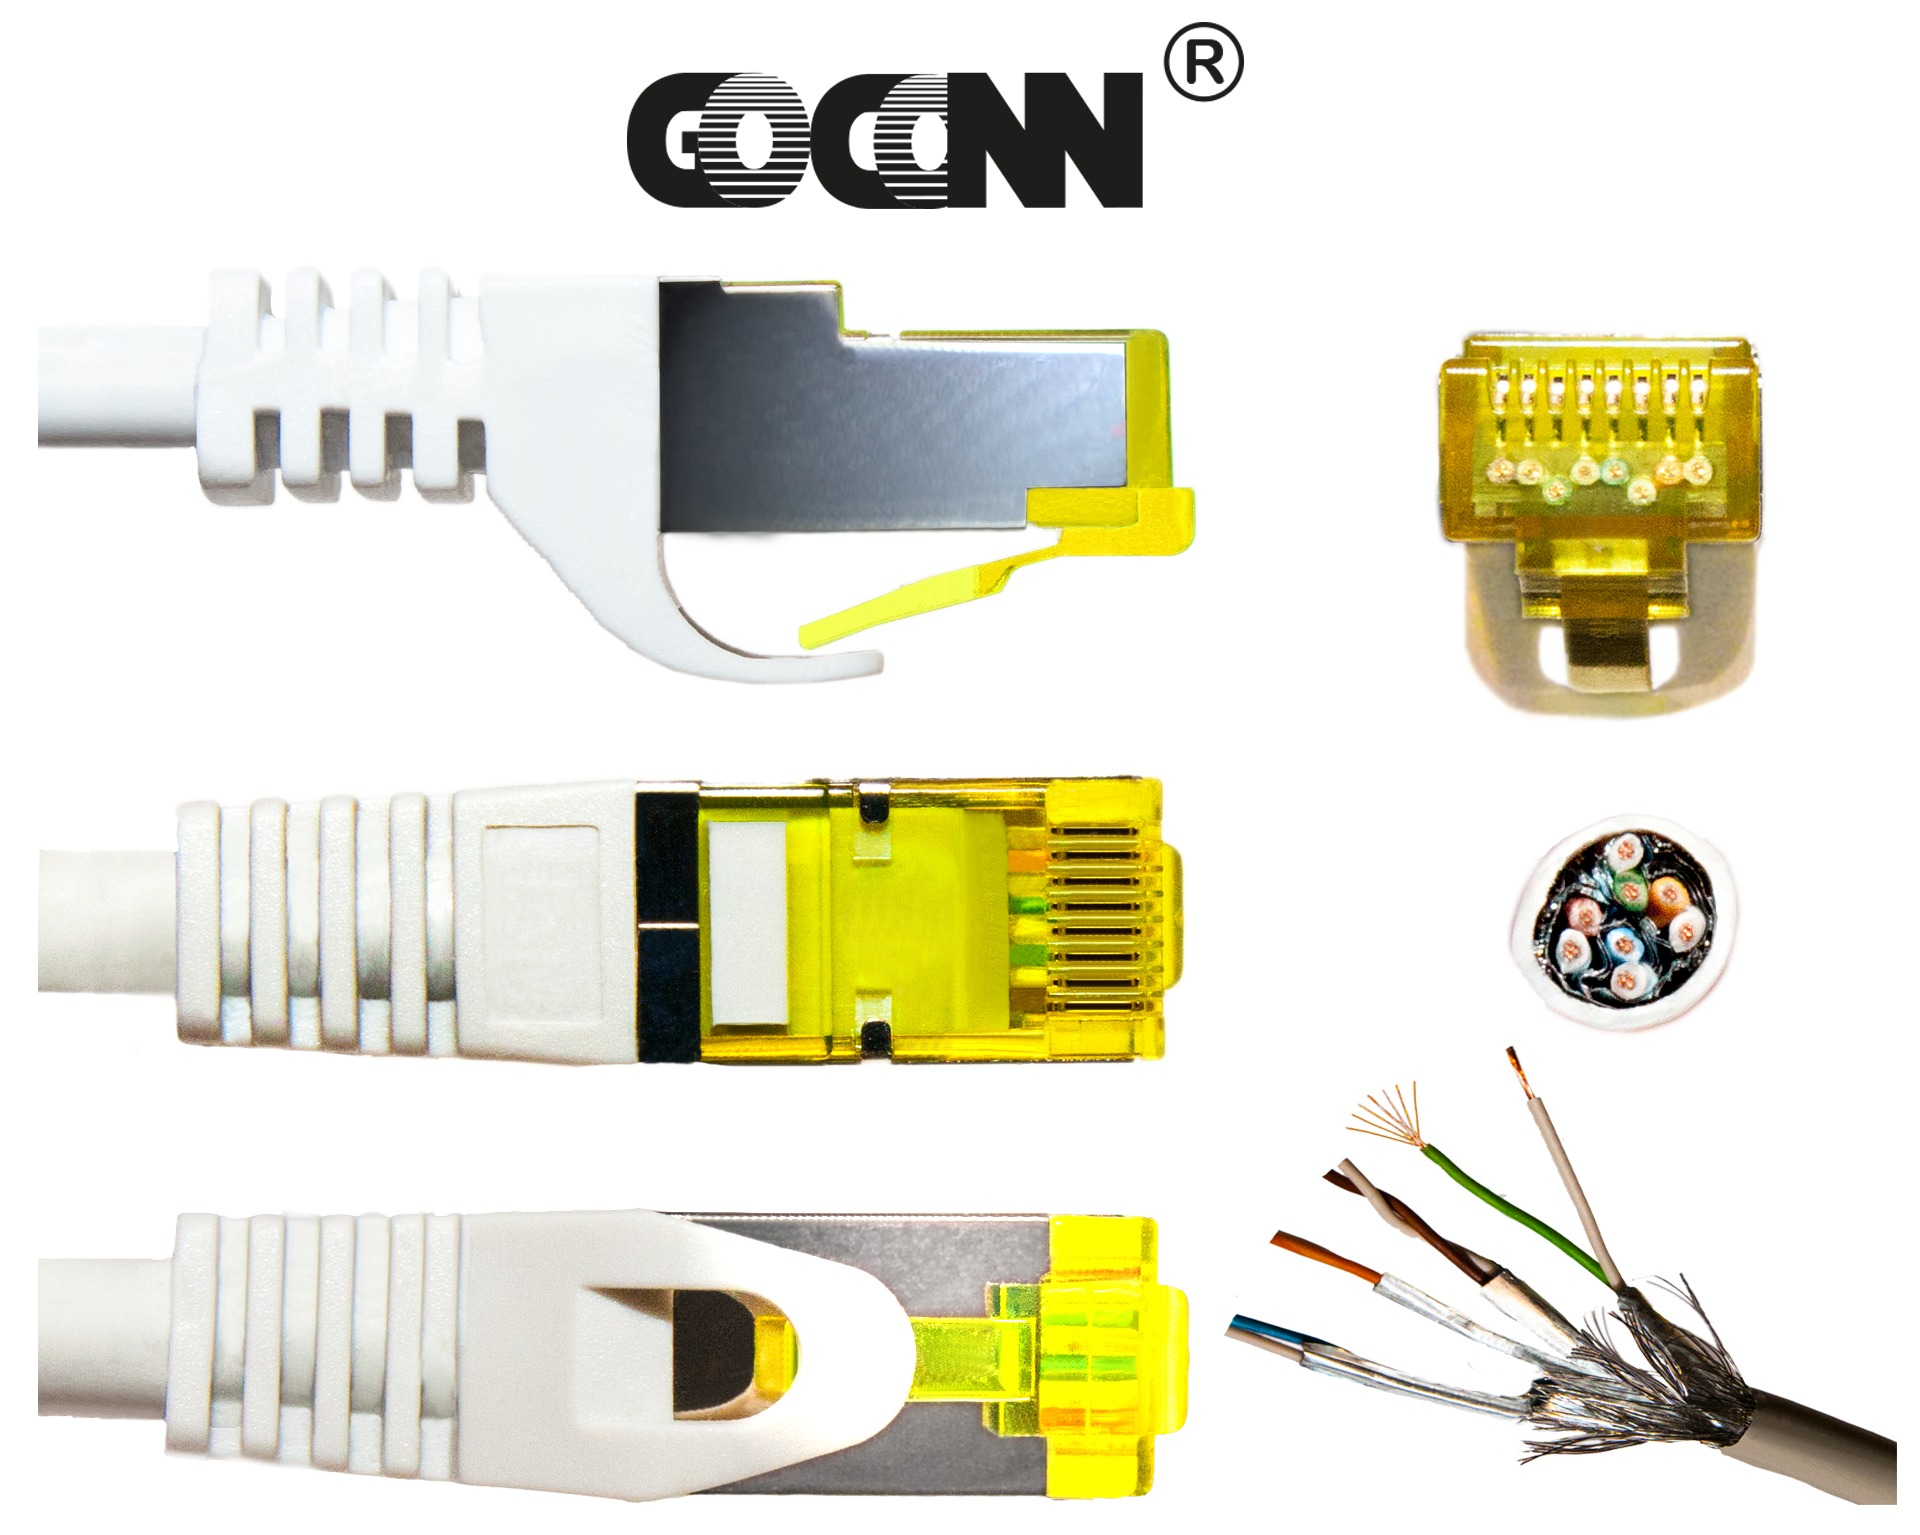 GoConn Patchkabel mit Cat7 Rohkabel 30m orange S/FTP PiMF 500MHz 2xgeschirmt